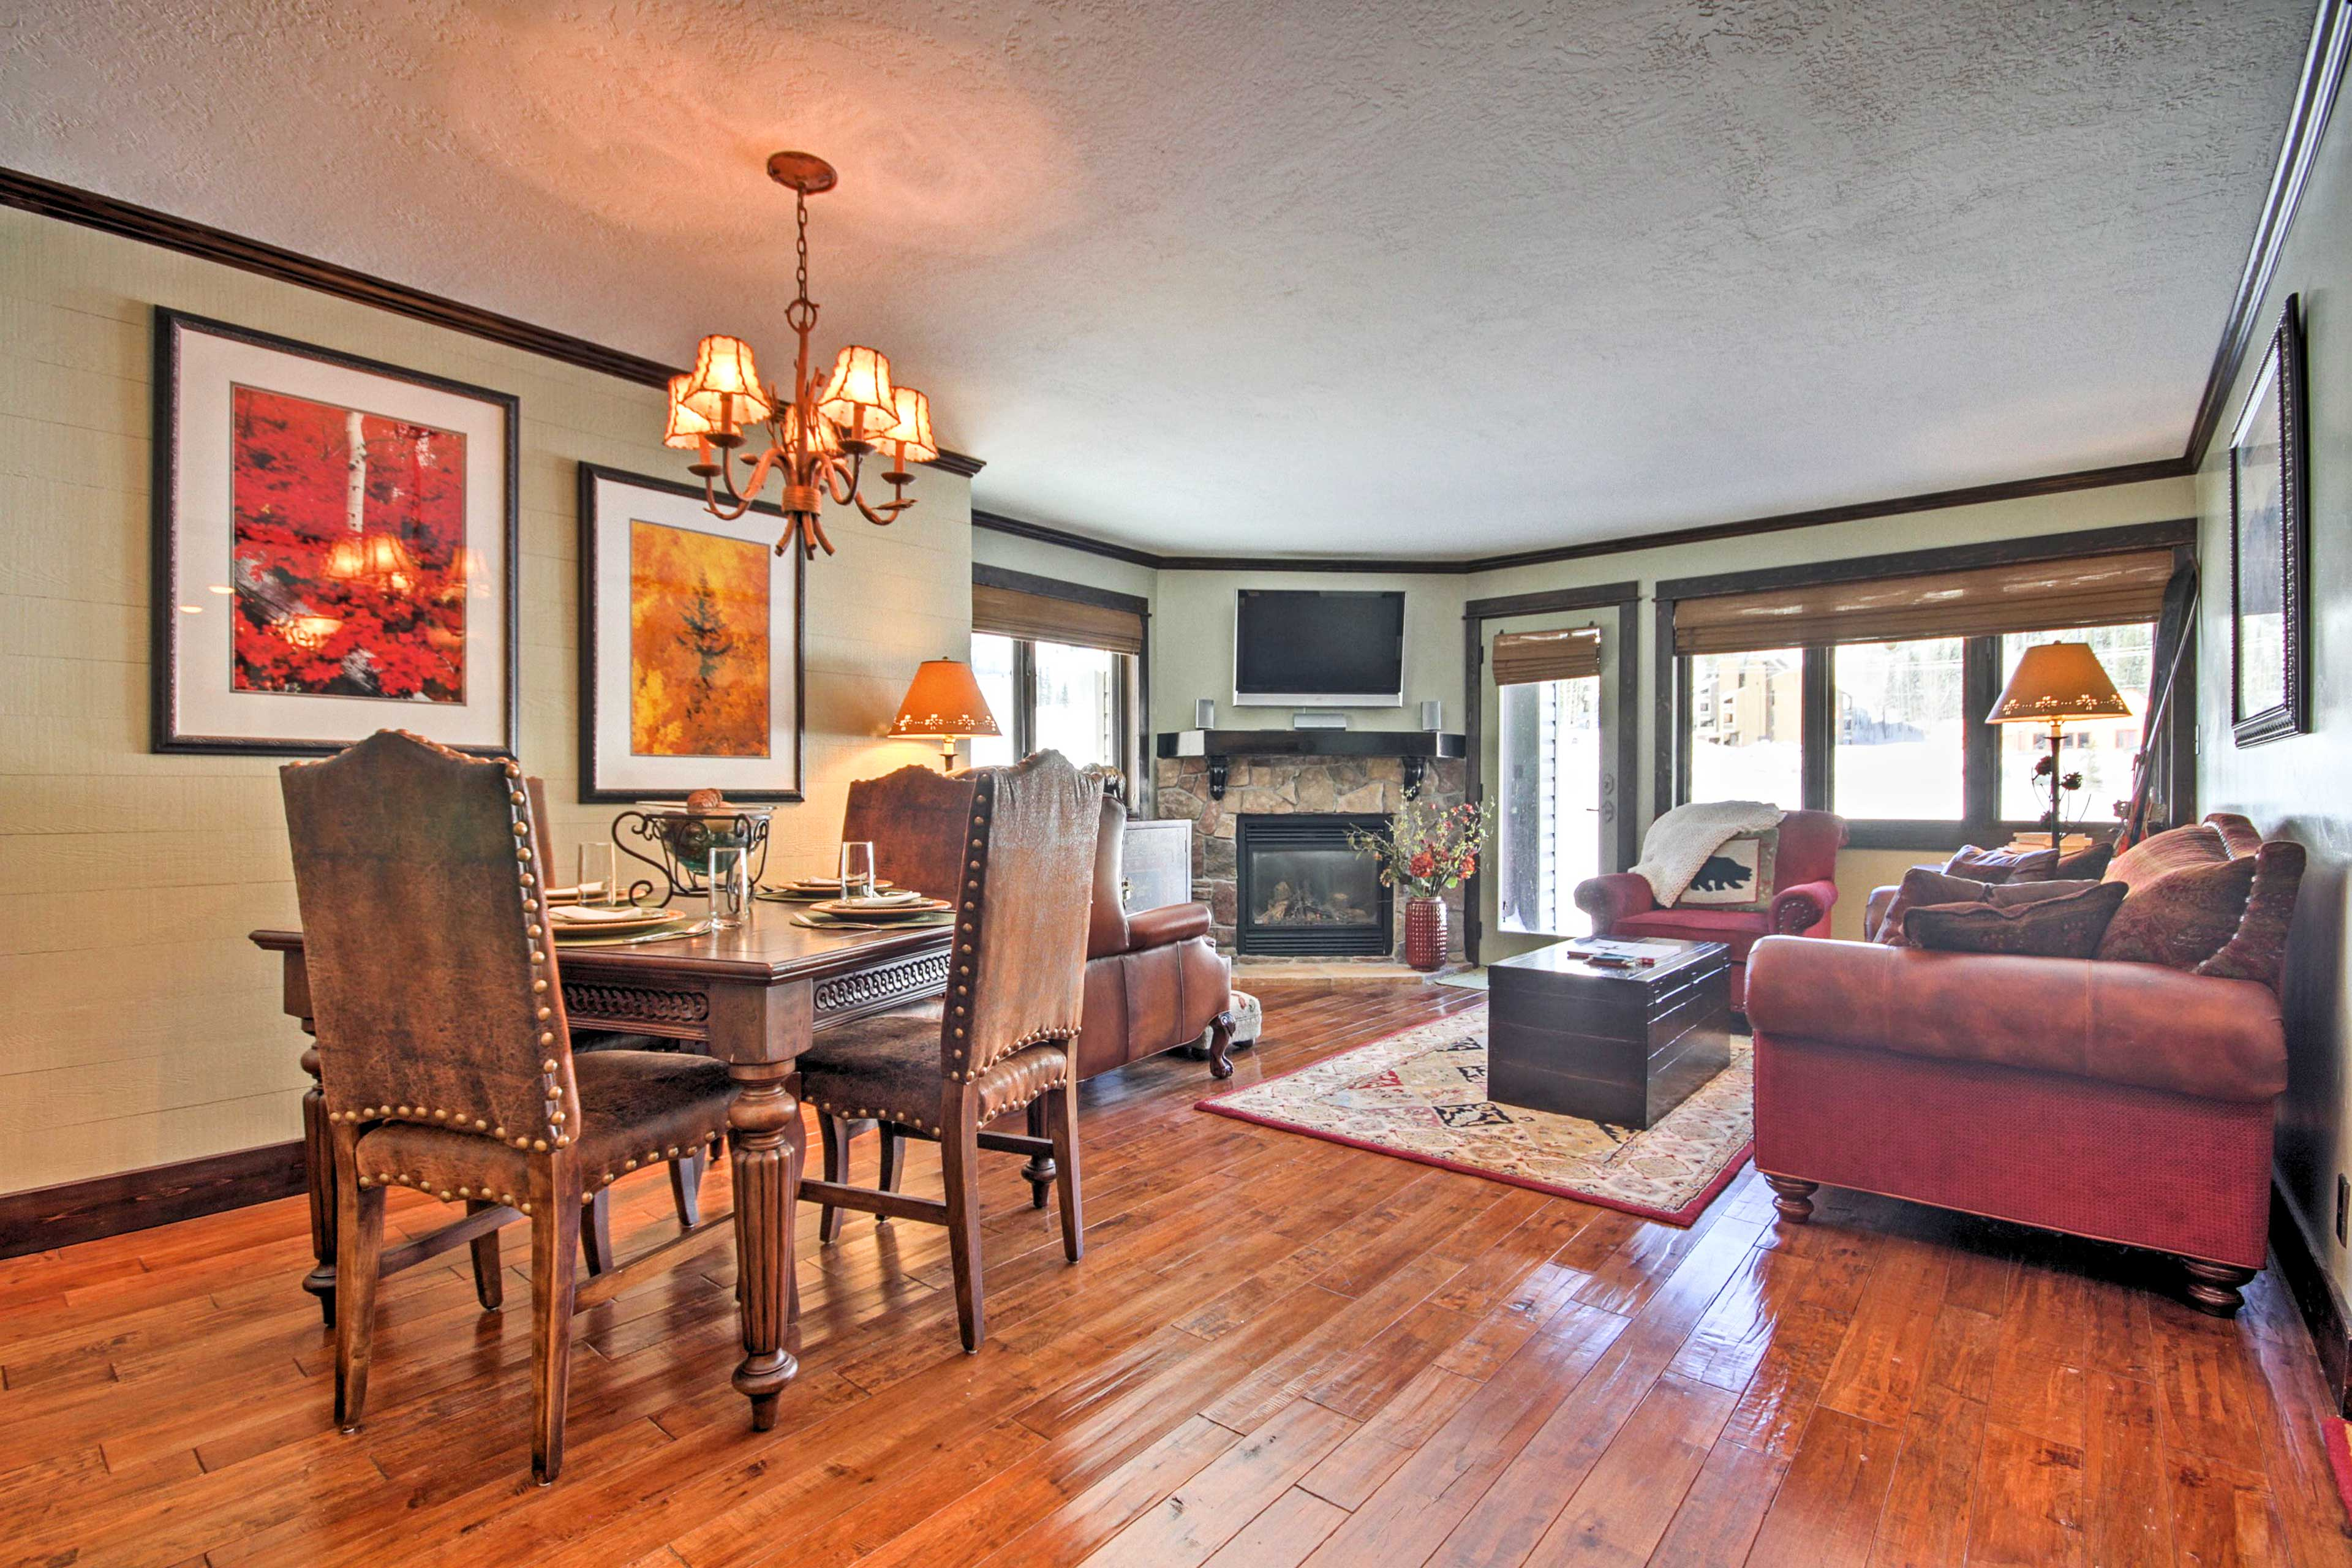 Hardwood floors carry you from room to room.